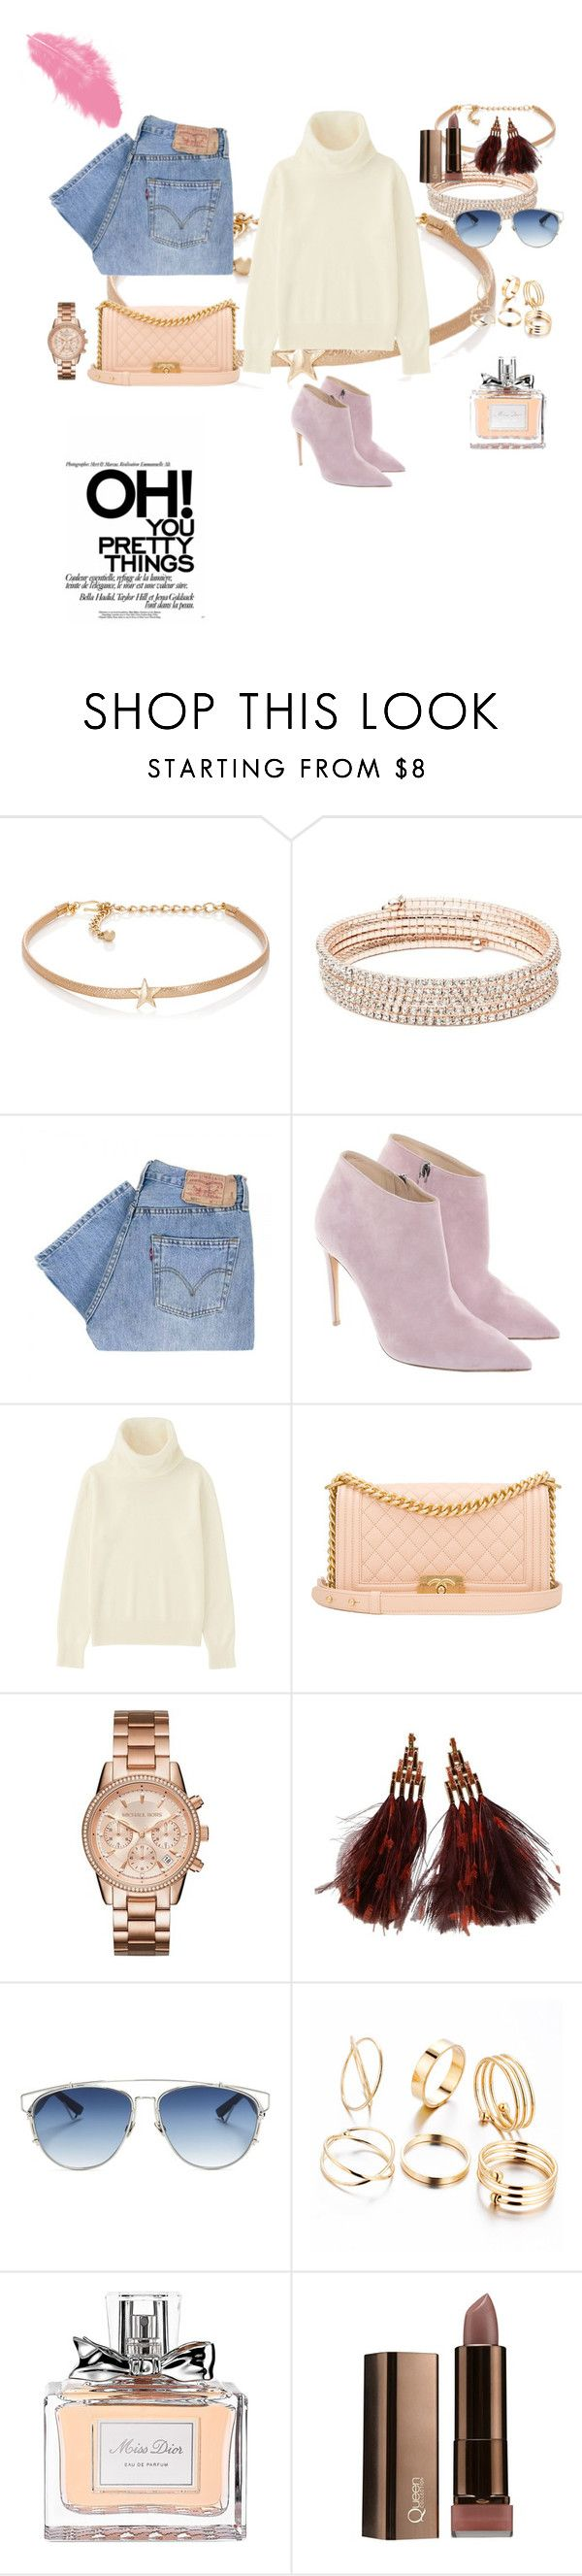 """#oh you pretty things !! 💜💋💋💋"" by joe-khulan on Polyvore featuring Kenneth Jay Lane, Anne Klein, Levi's, Ralph Lauren, Uniqlo, Chanel, Louis Vuitton and Christian Dior"